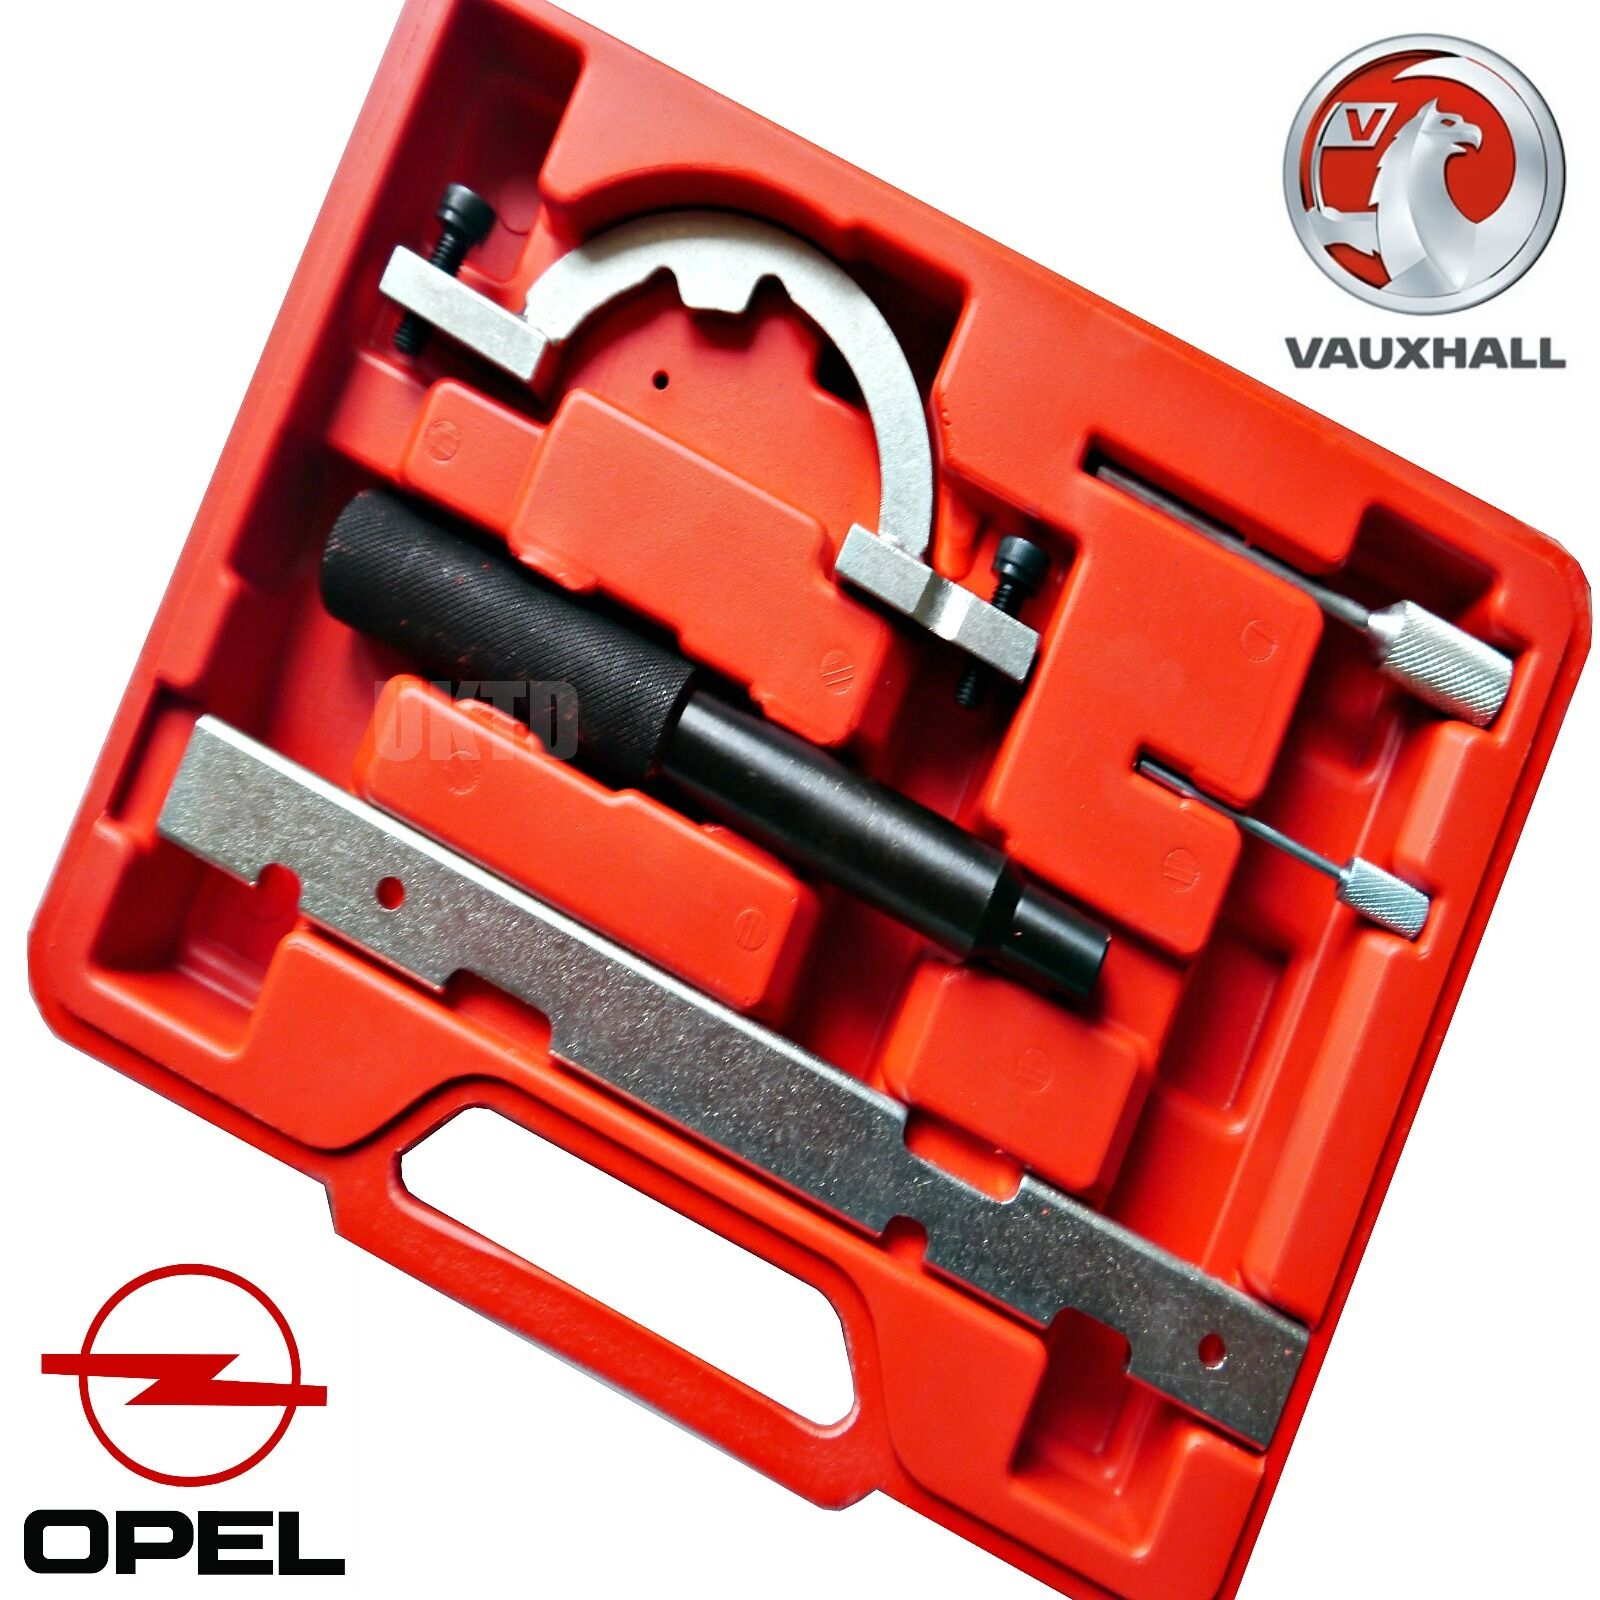 Vw 1600 Engine Removal: Vauxhall Timing Setting Locking TooL Corsa AGILA 3